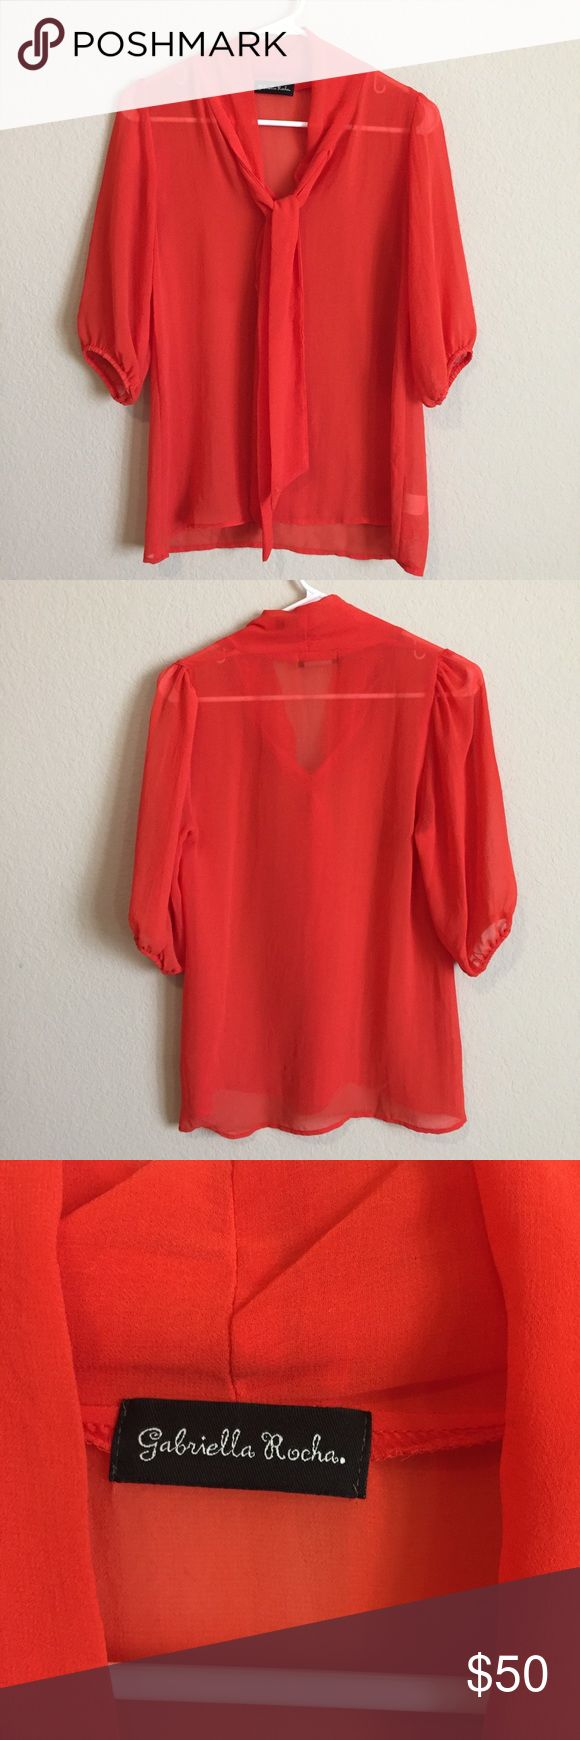 Gabriella Rocha blouse Like new no defects. Worn only s couple times gabriella rocha Tops Blouses